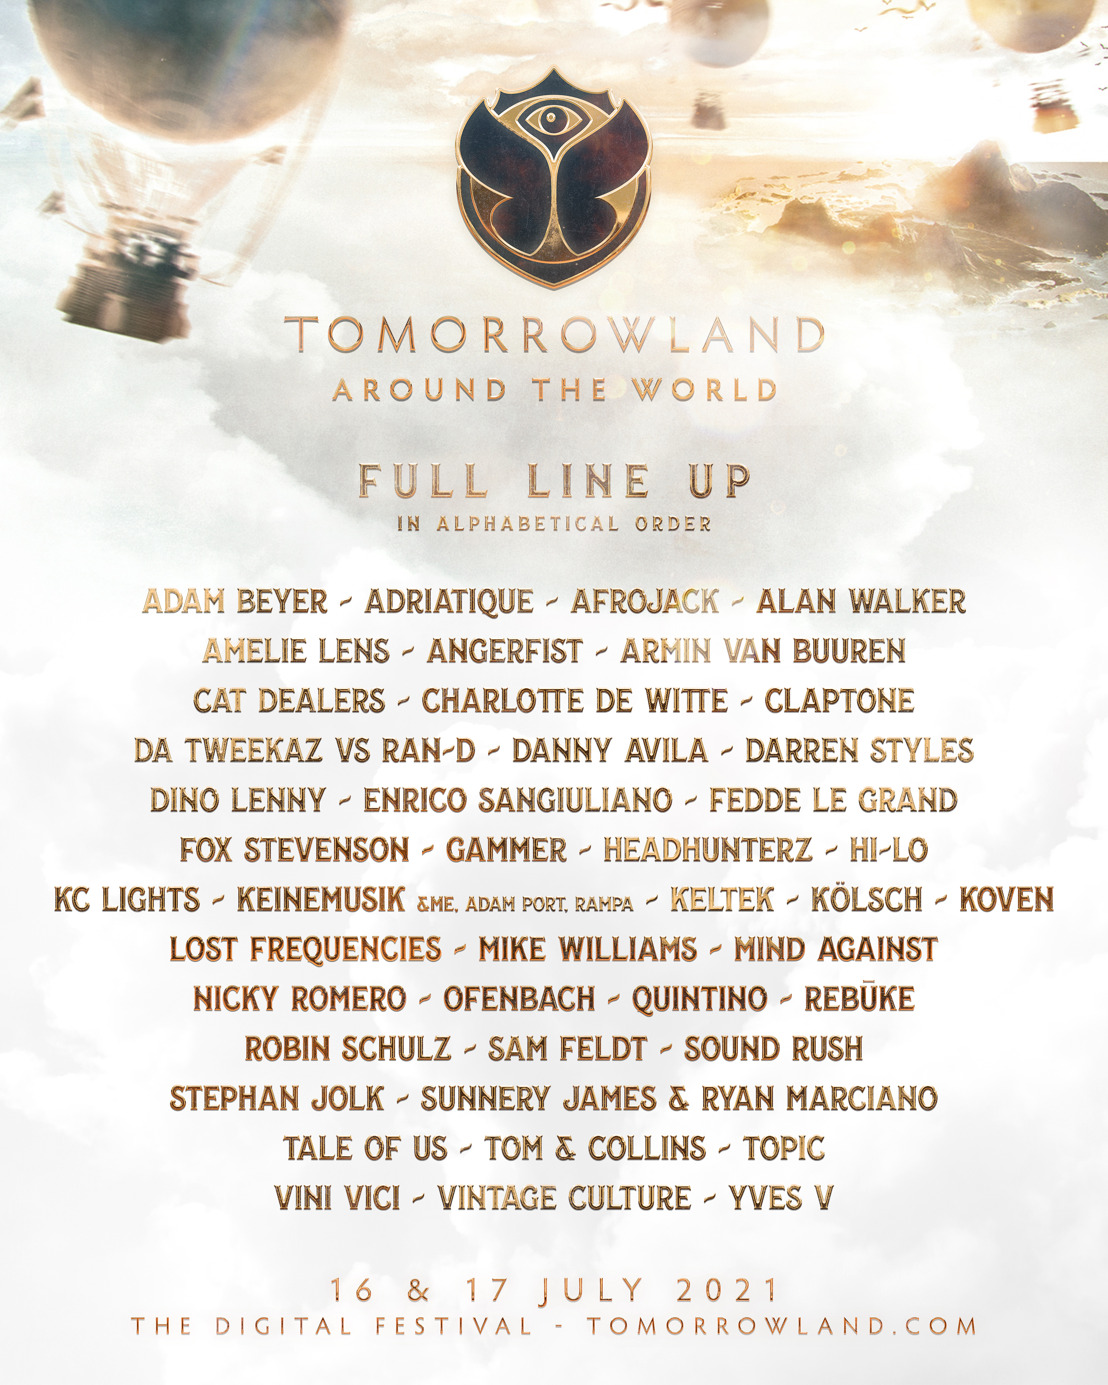 Afrojack, Alan Walker, Amelie Lens, Armin van Buuren, Charlotte de Witte, Kölsch, Lost Frequencies, Tale Of Us and many more join Tomorrowland Around the World 2021